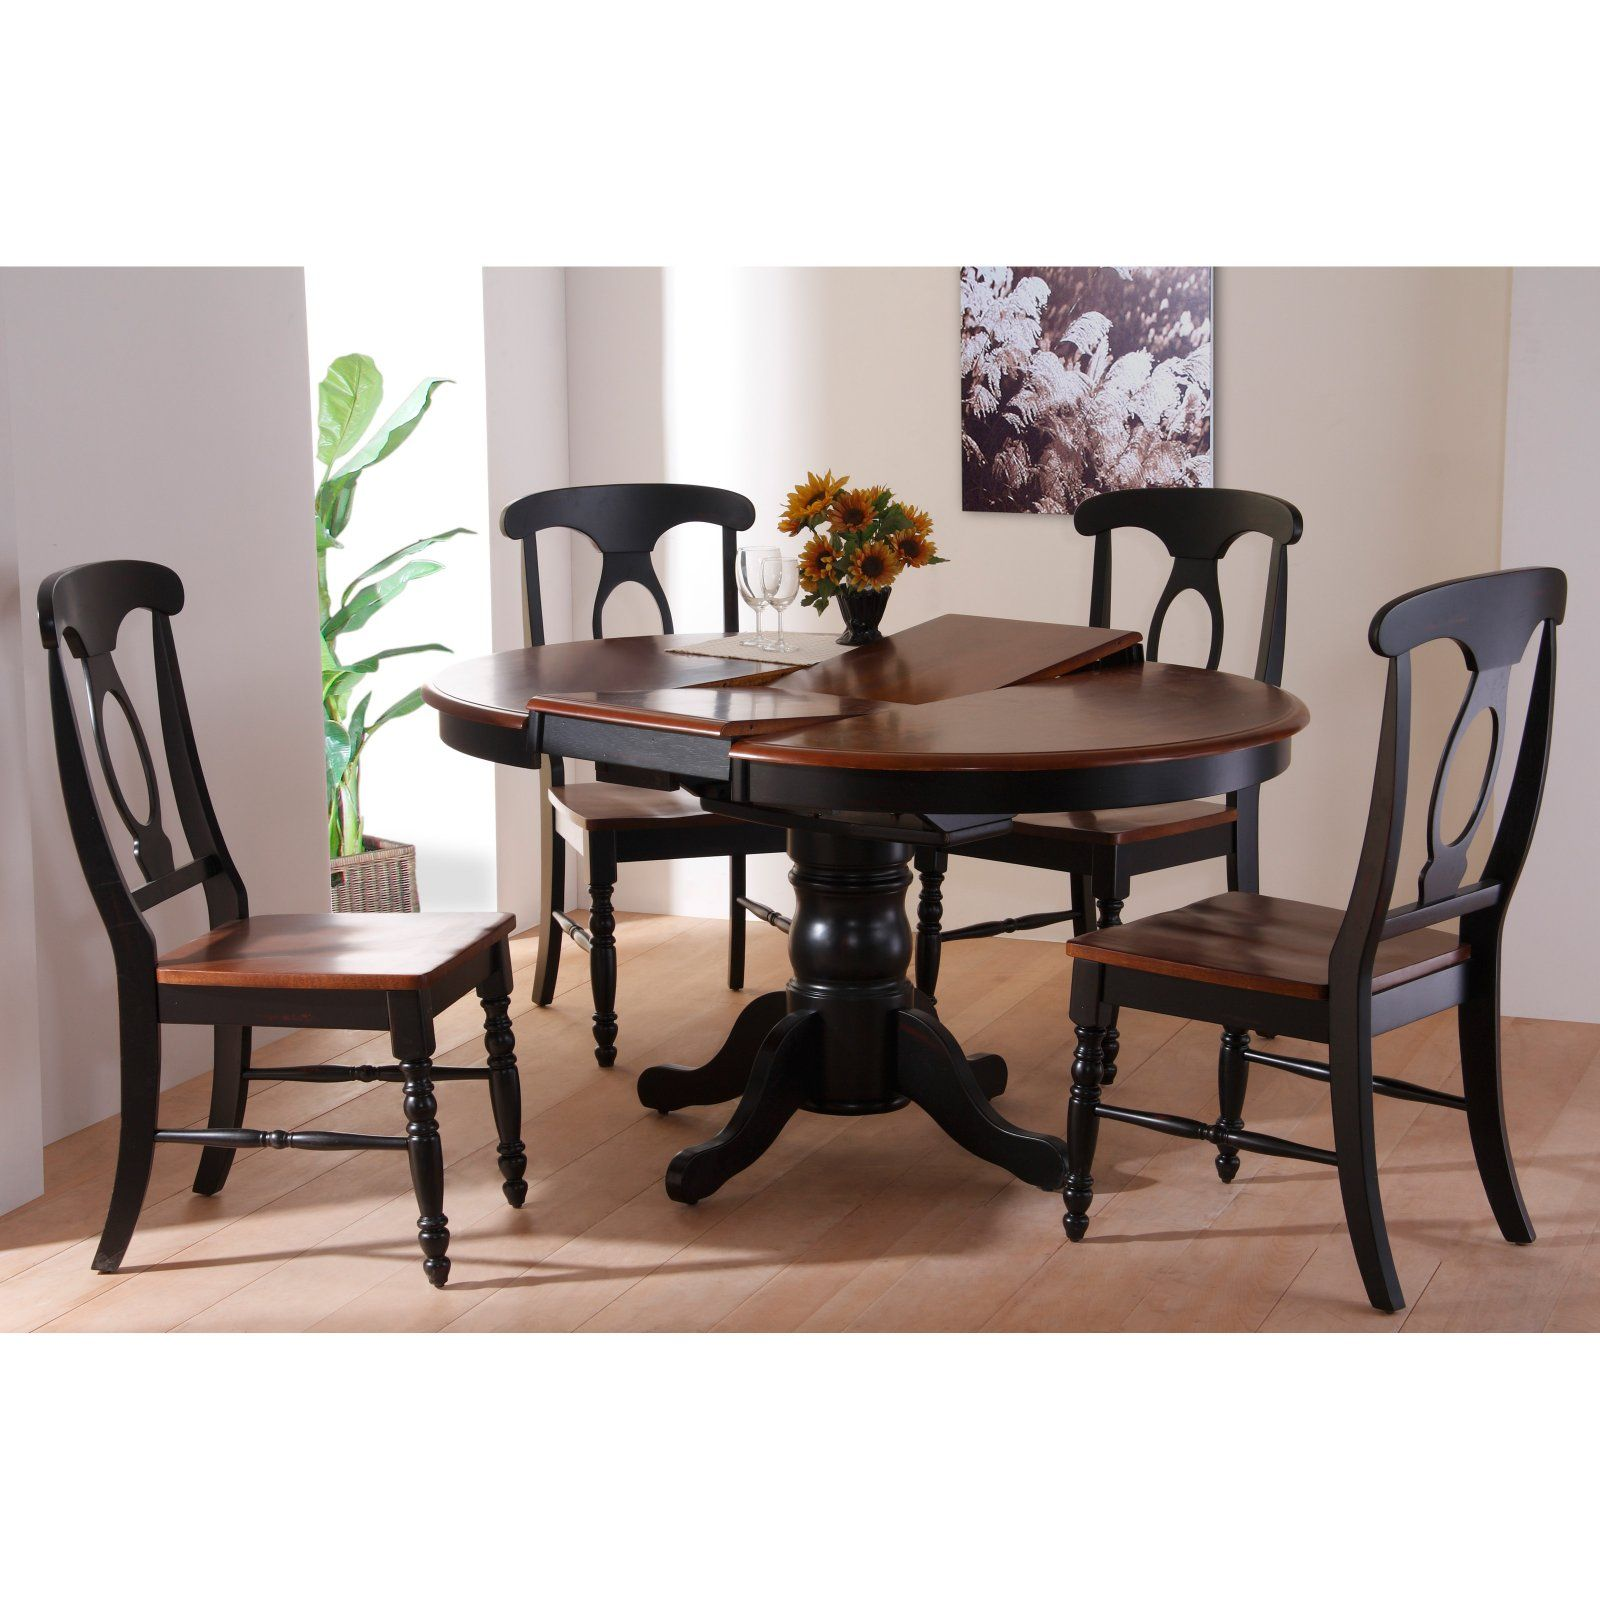 Casual Home 5 Piece Oval Solid Wood Pedestal Table Set With Napoleon Chairs Ebony Dark Walnut